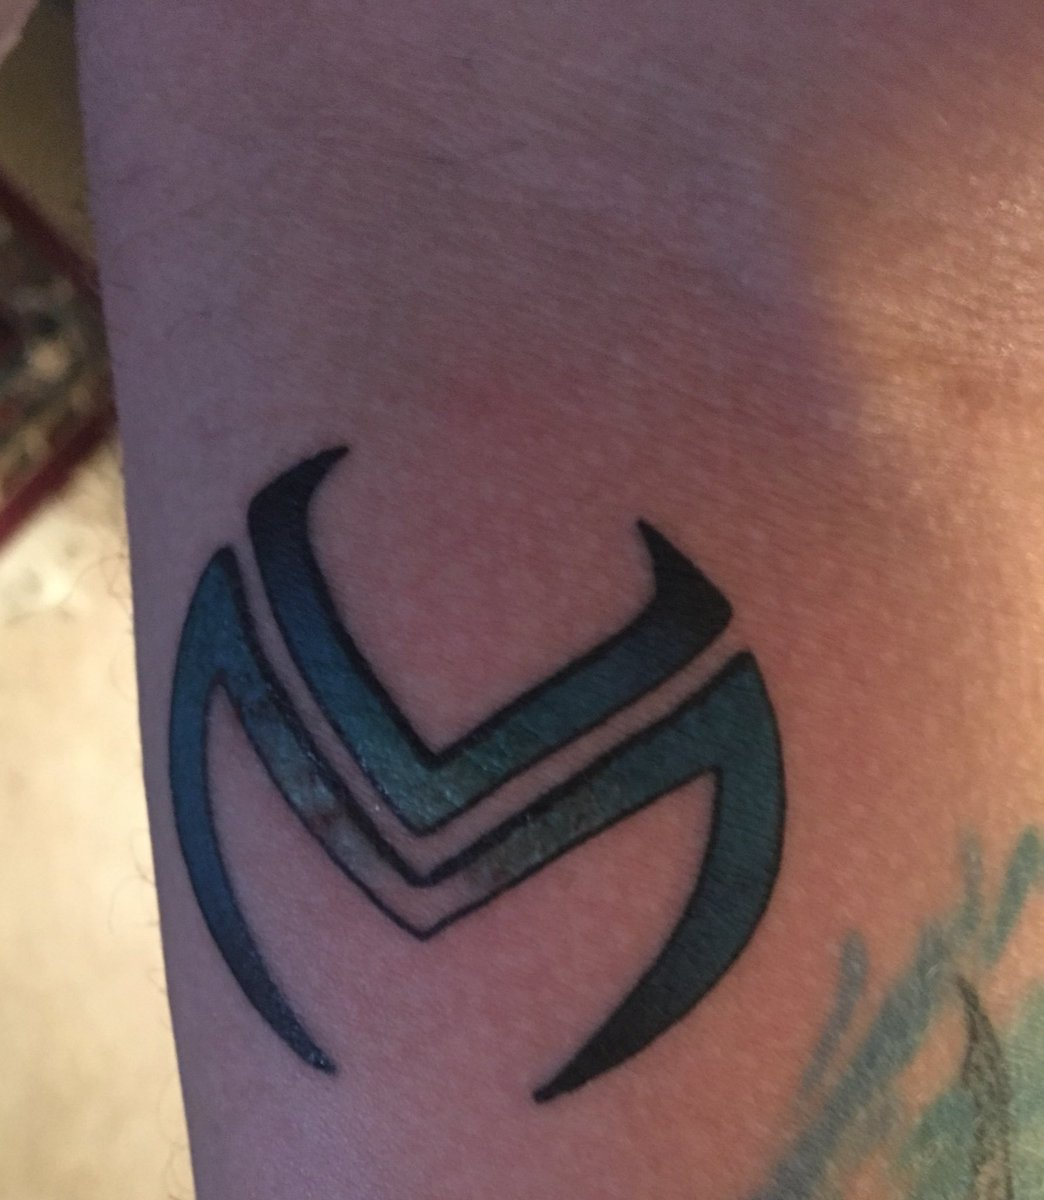 Jason molloy argosphoenix twitter my new vox machina tattoo to commemorate an end to a new beginning criticalrolepicitterzojy2zvv53 biocorpaavc Image collections